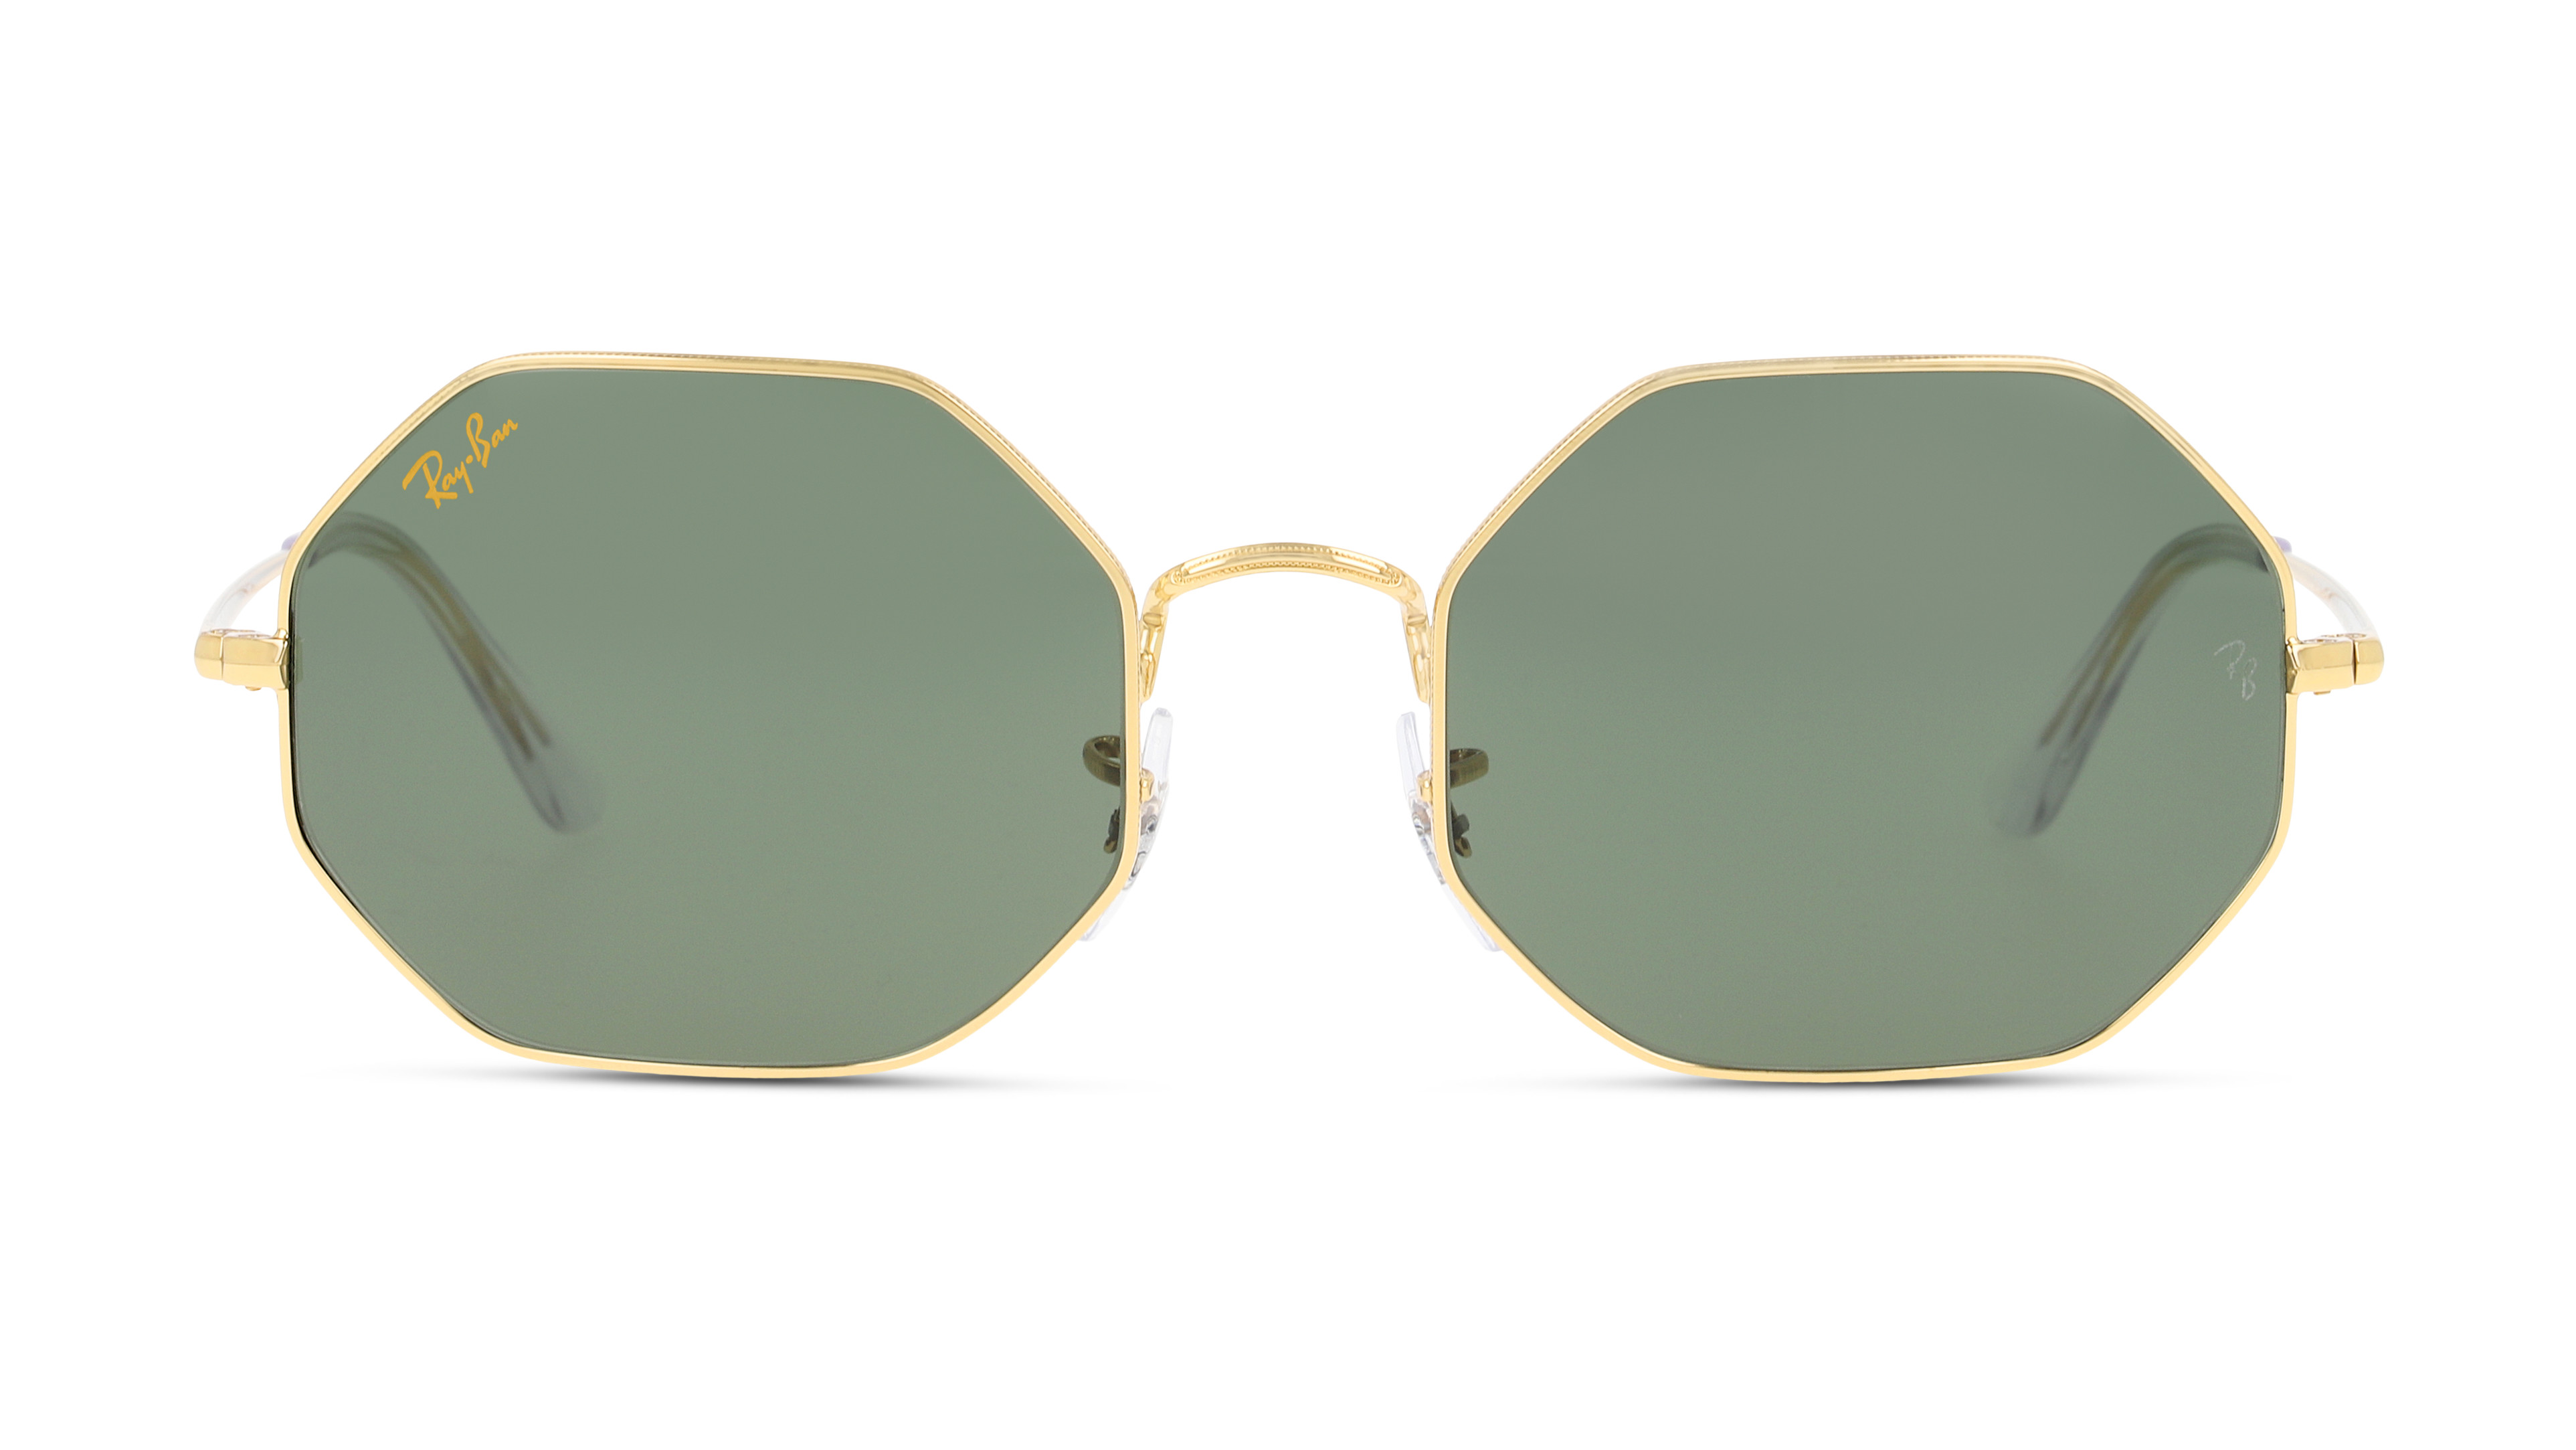 8056597199933-front-Ray-Ban-Sonnenbrille-0rb1972-Octagon-gold